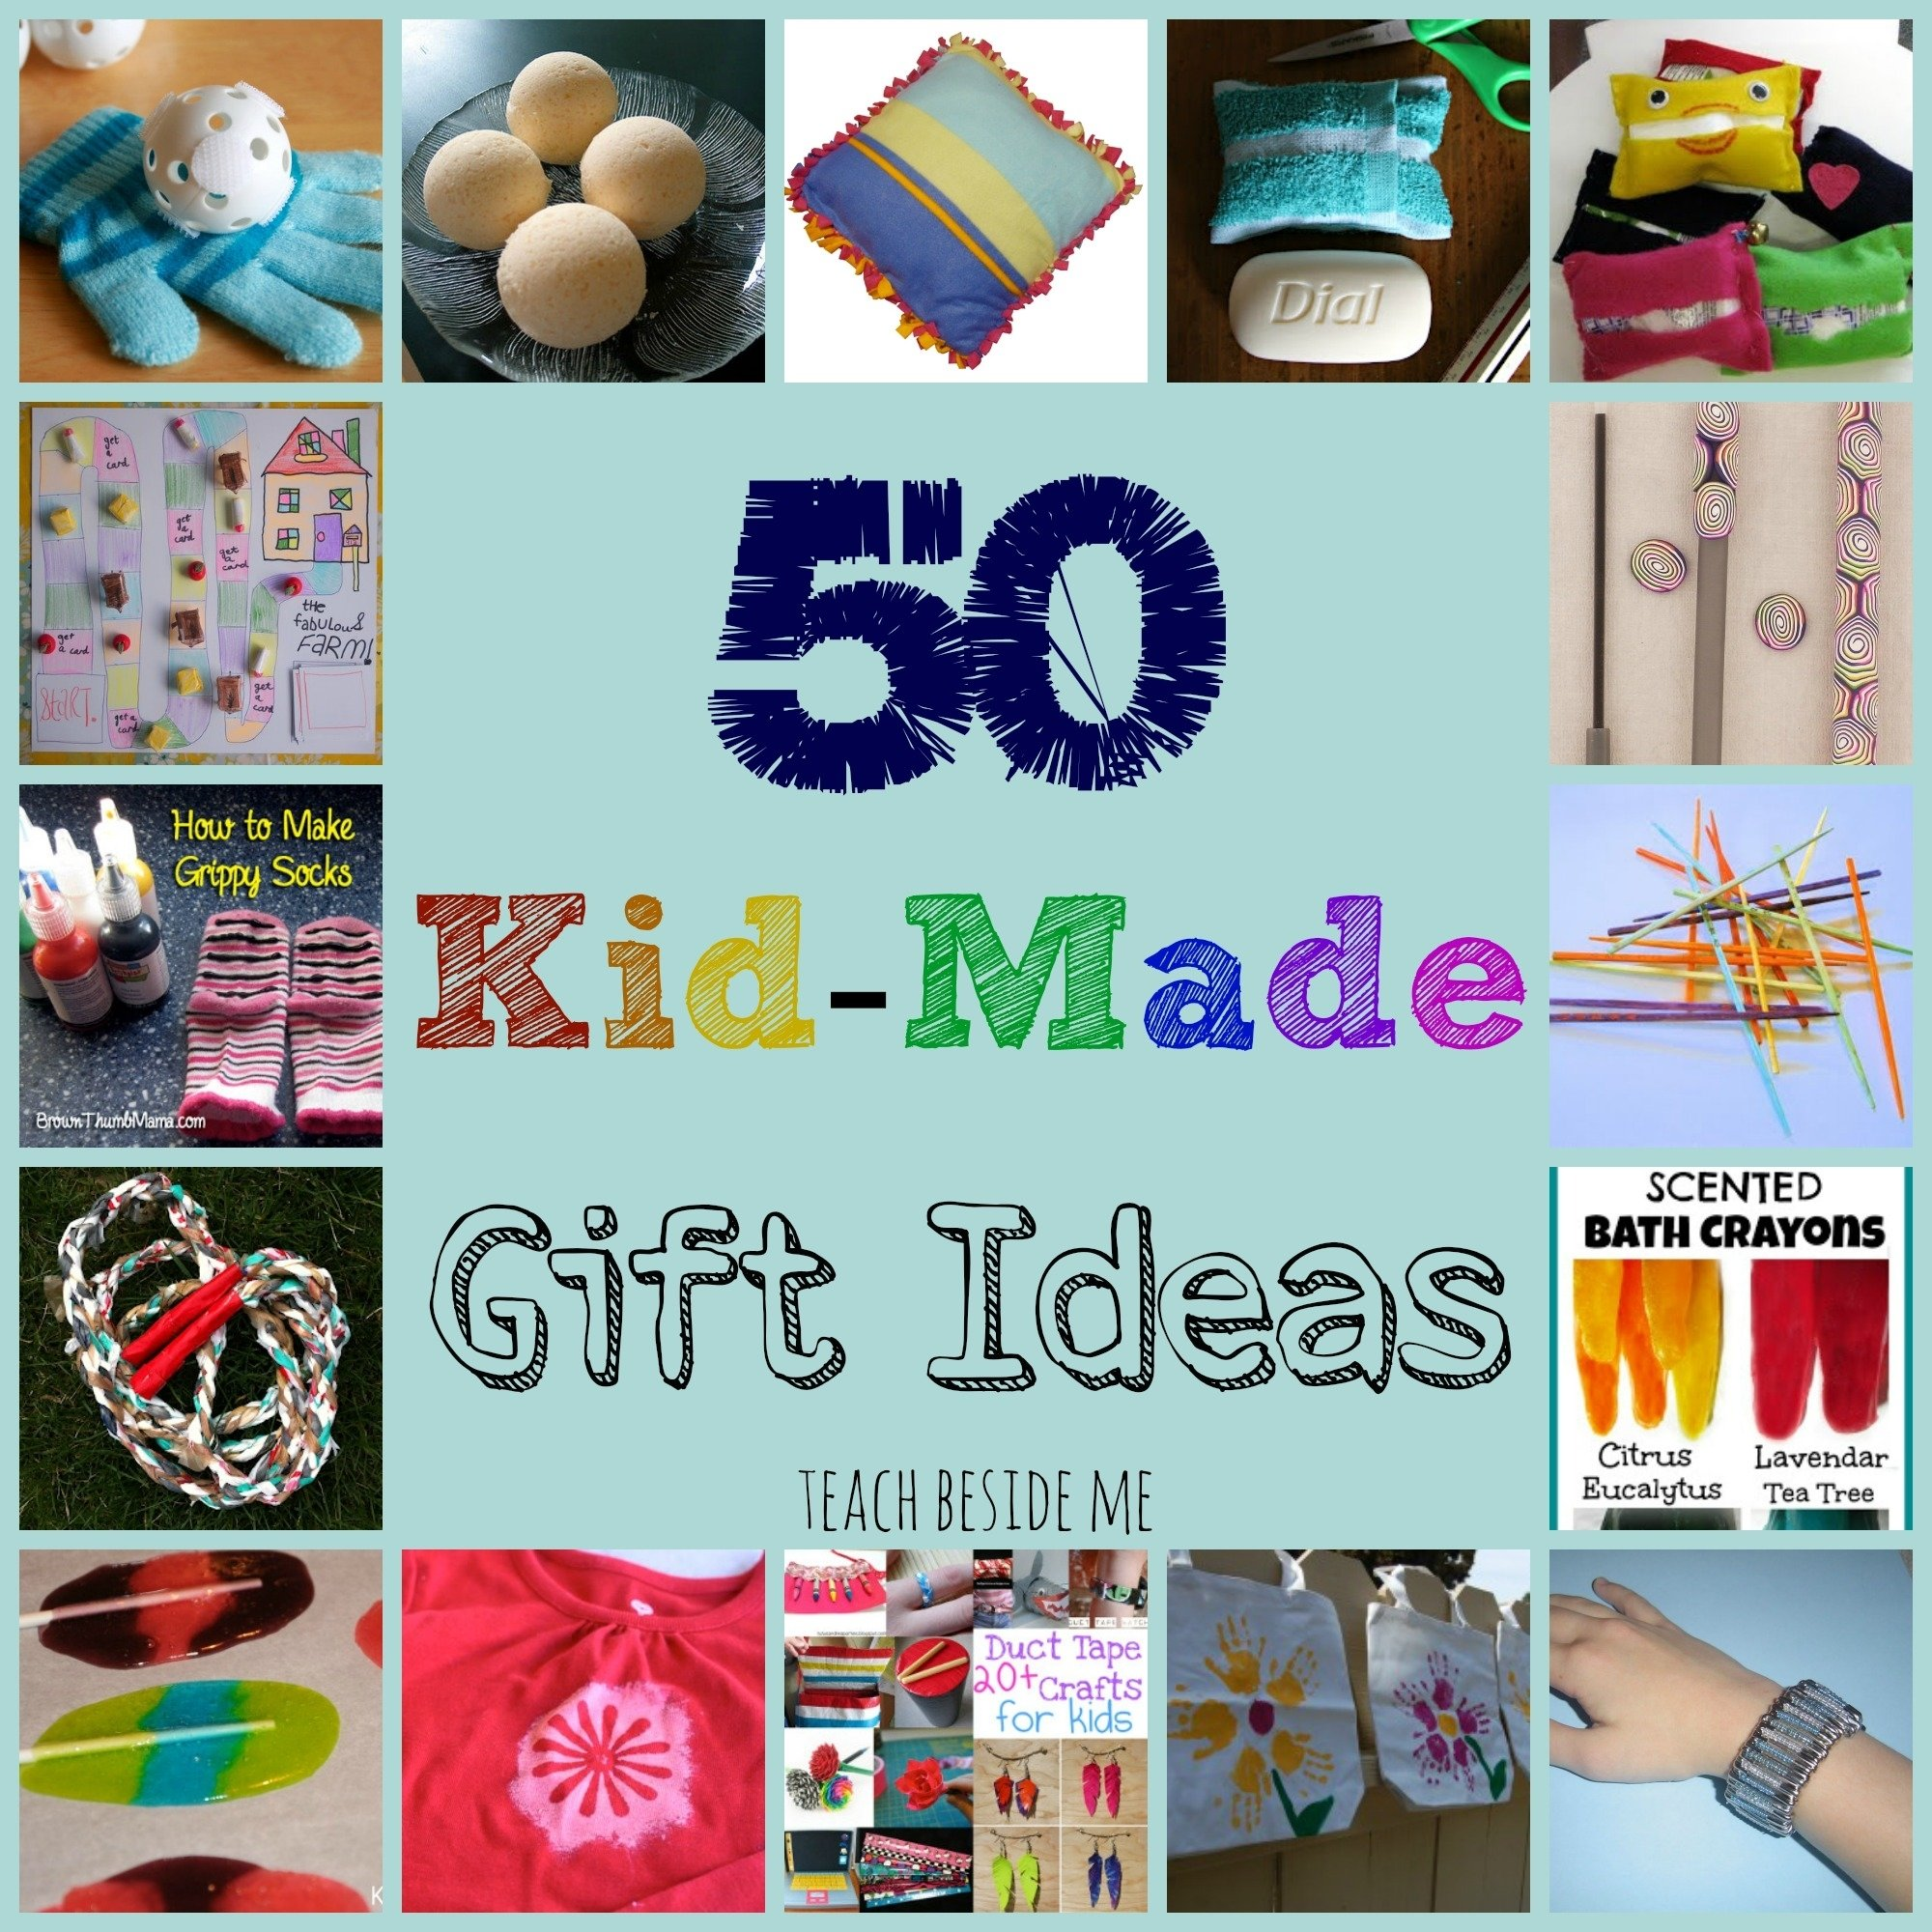 10 Cute How To Ideas For Kids kid made gift ideas for family teach beside me 11 2020